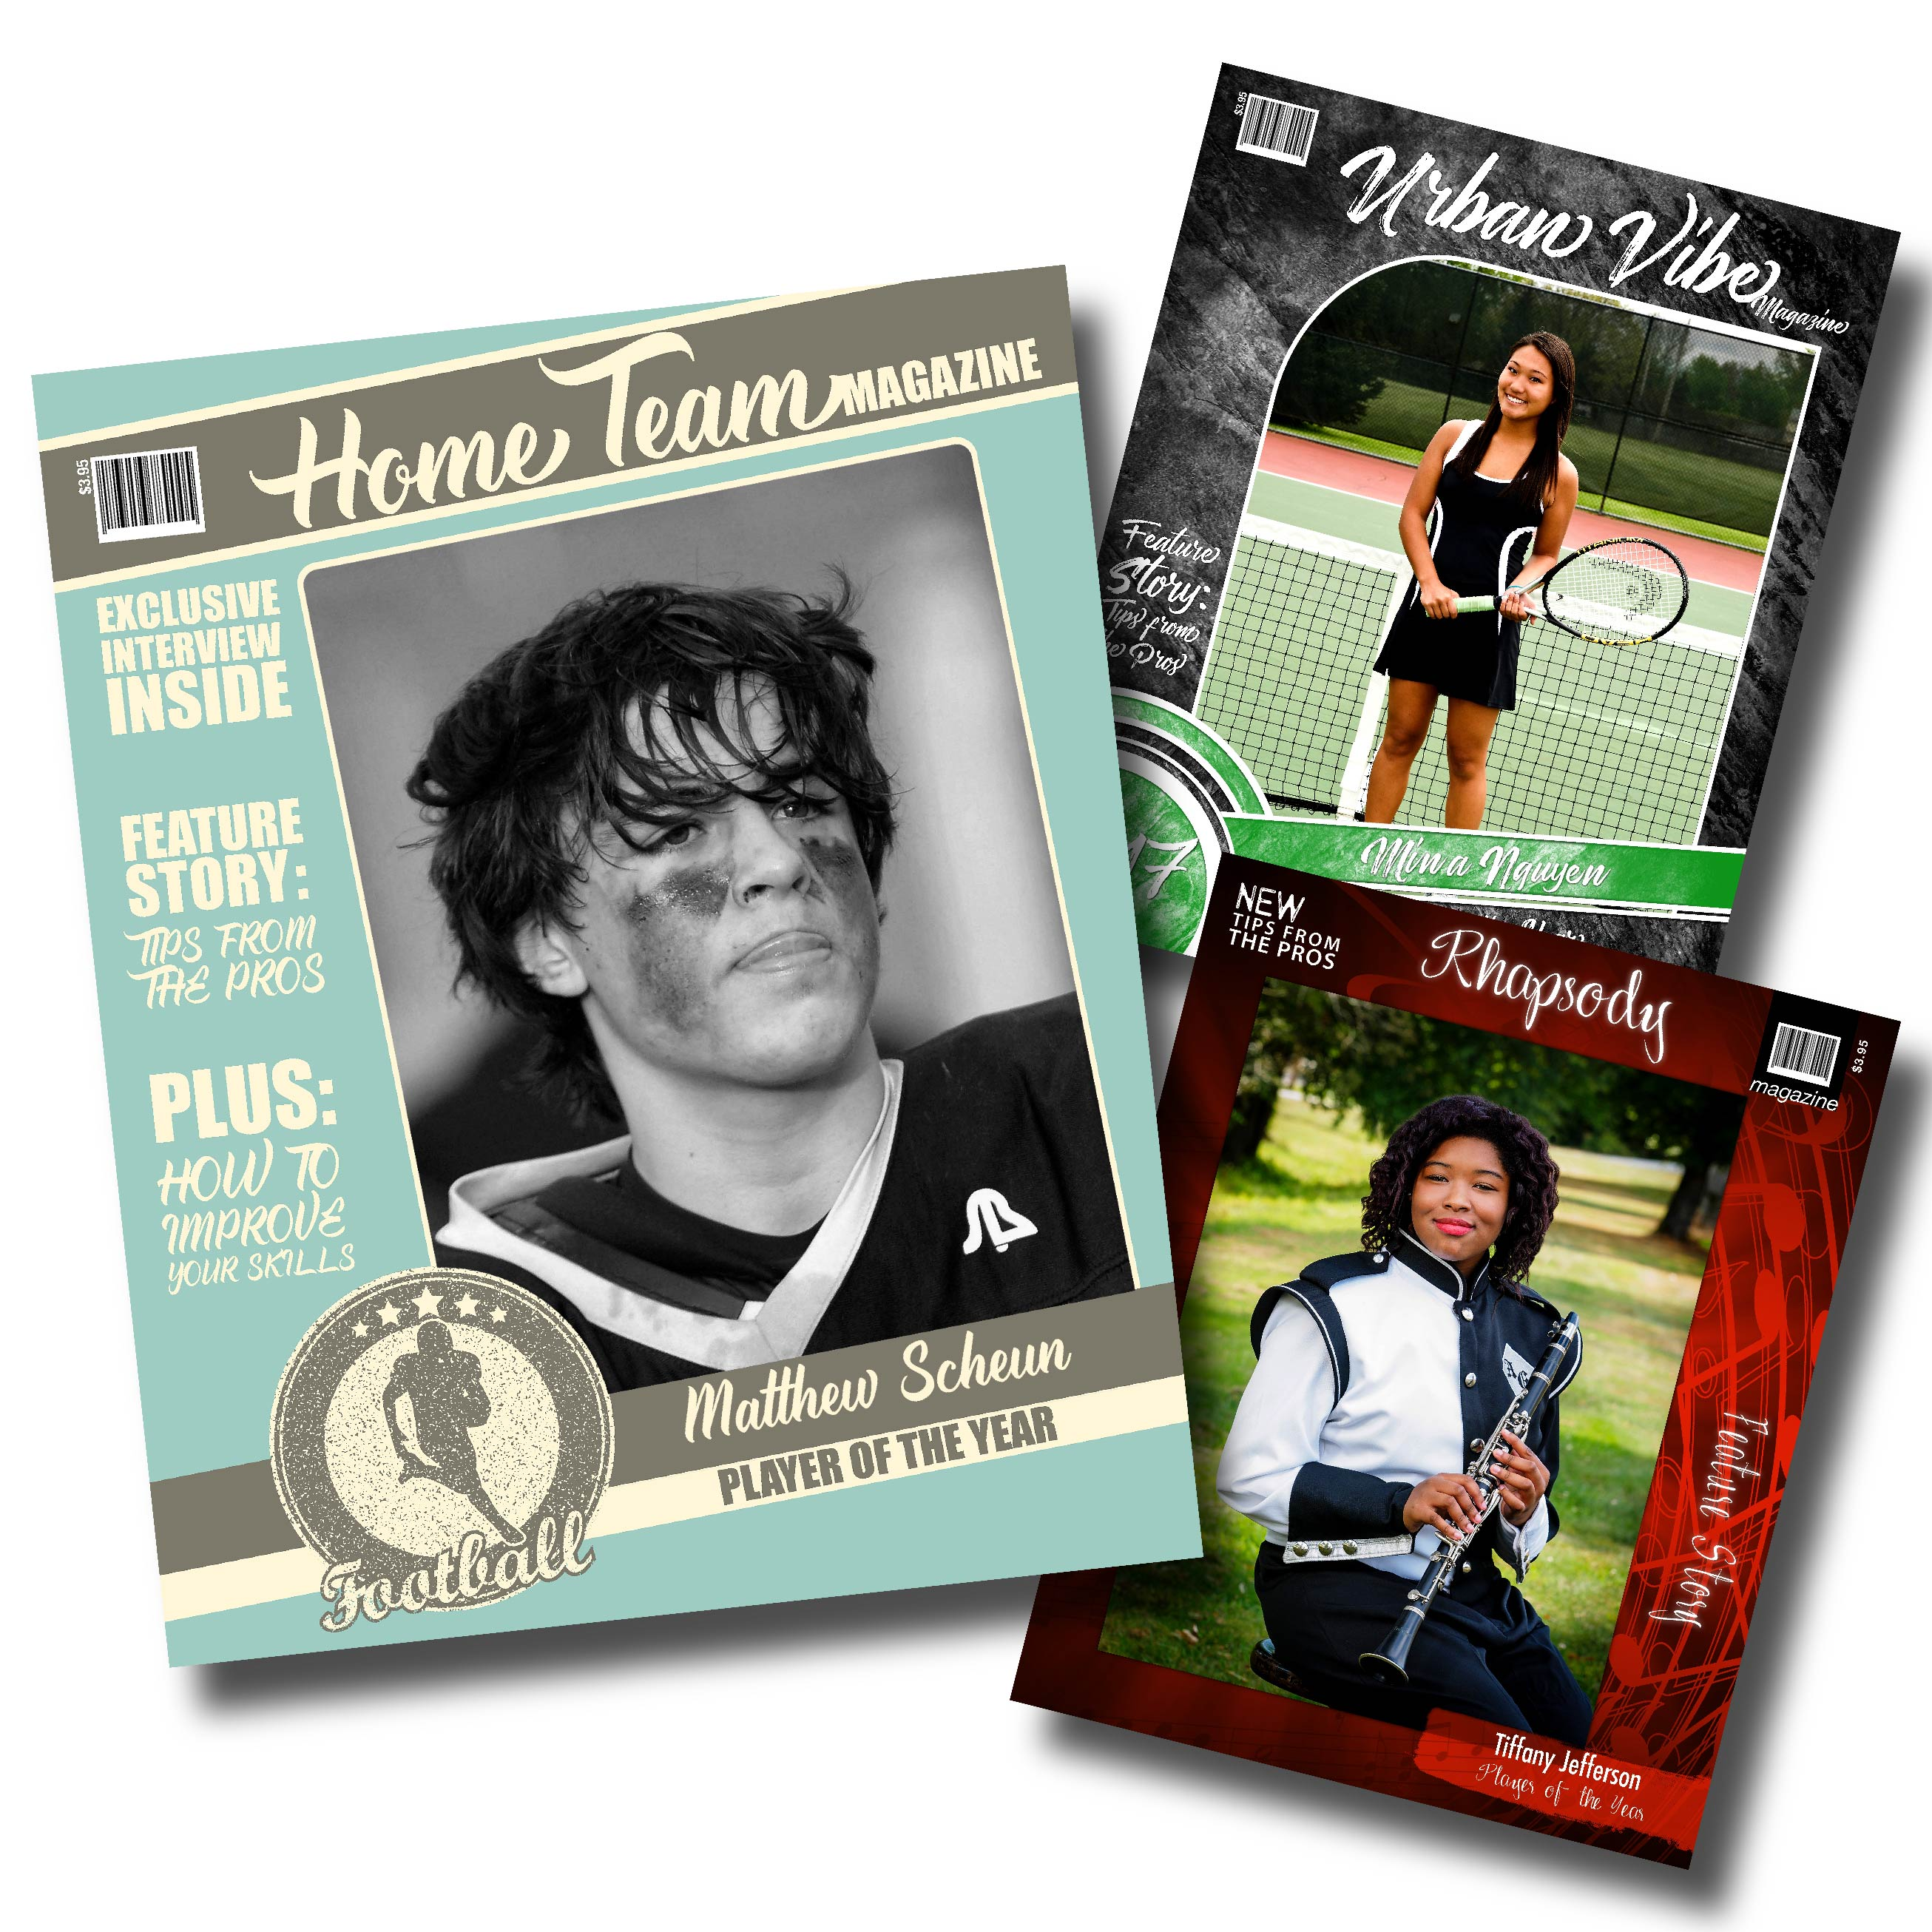 3 Magazine Covers in Urban Vibe, Home Team Football & Rhapsody